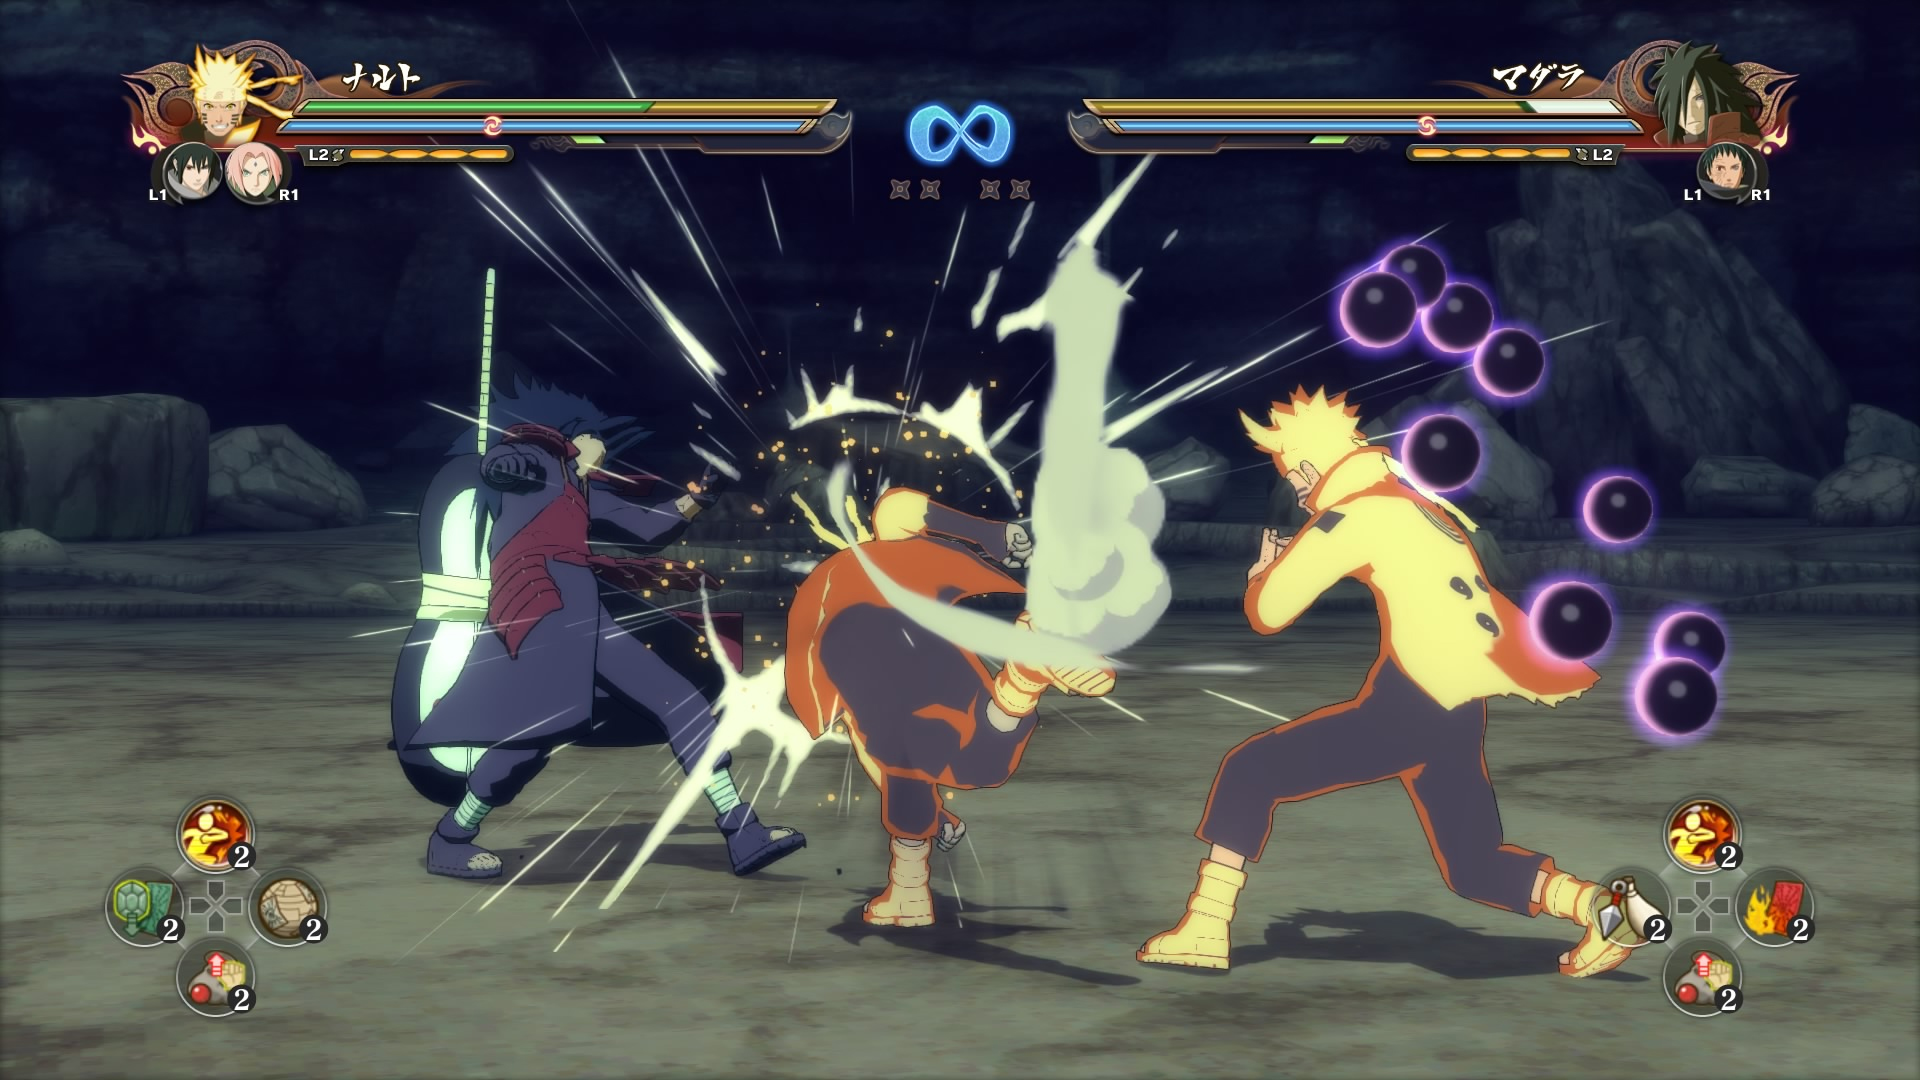 Download Game Naruto Shippuden Ultimate Ninja Storm 1 Pc - sevensimple